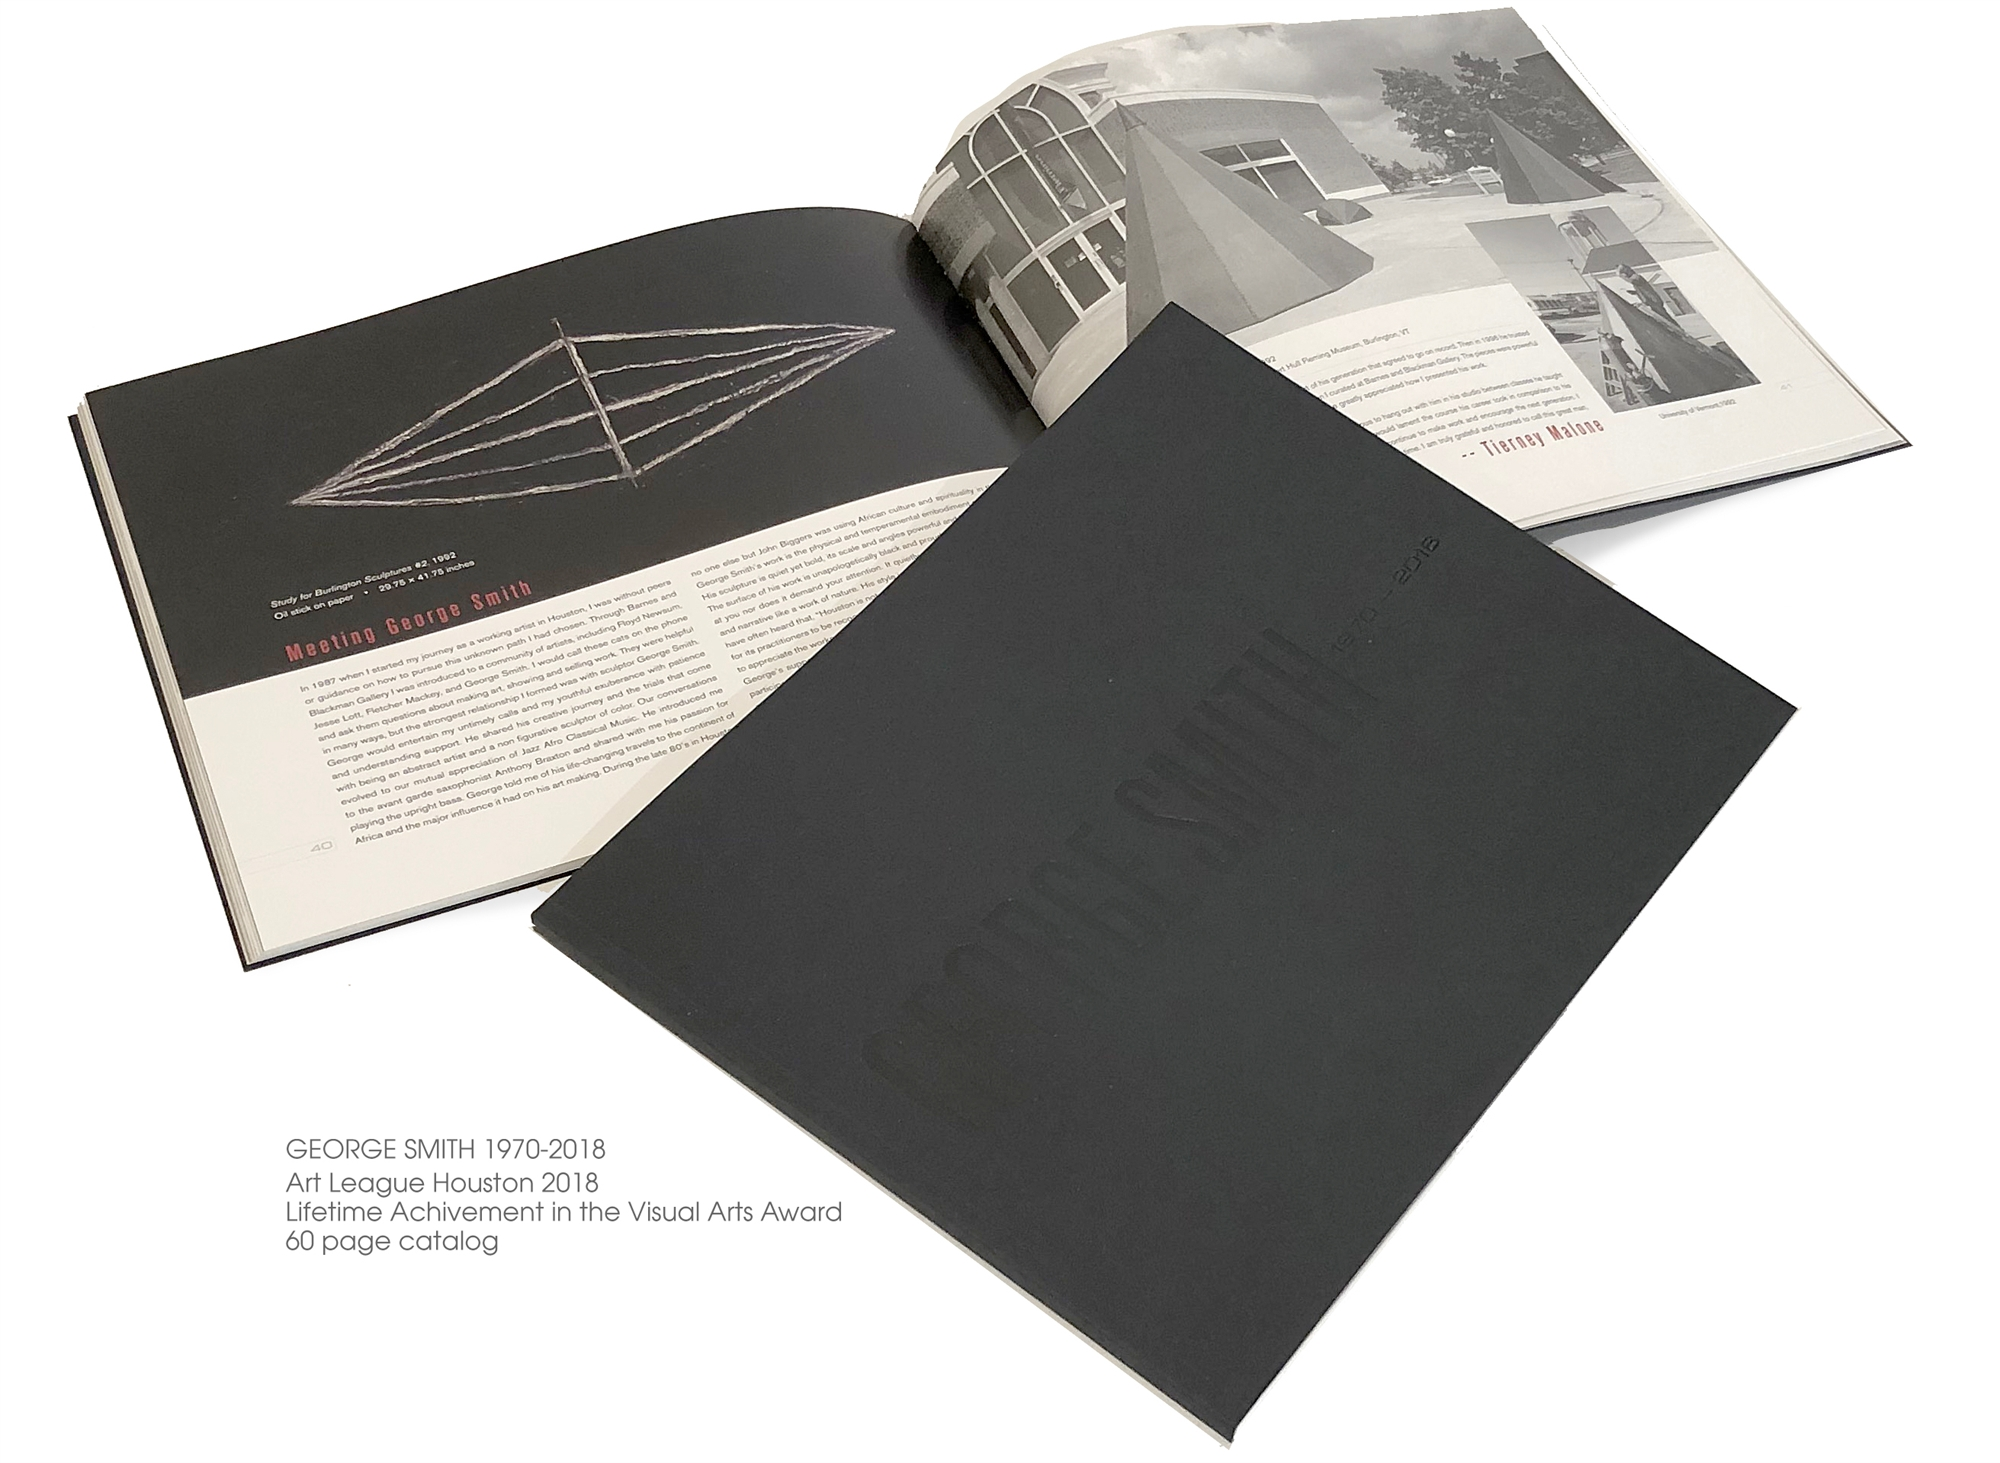 Retrospective Book by George Smith